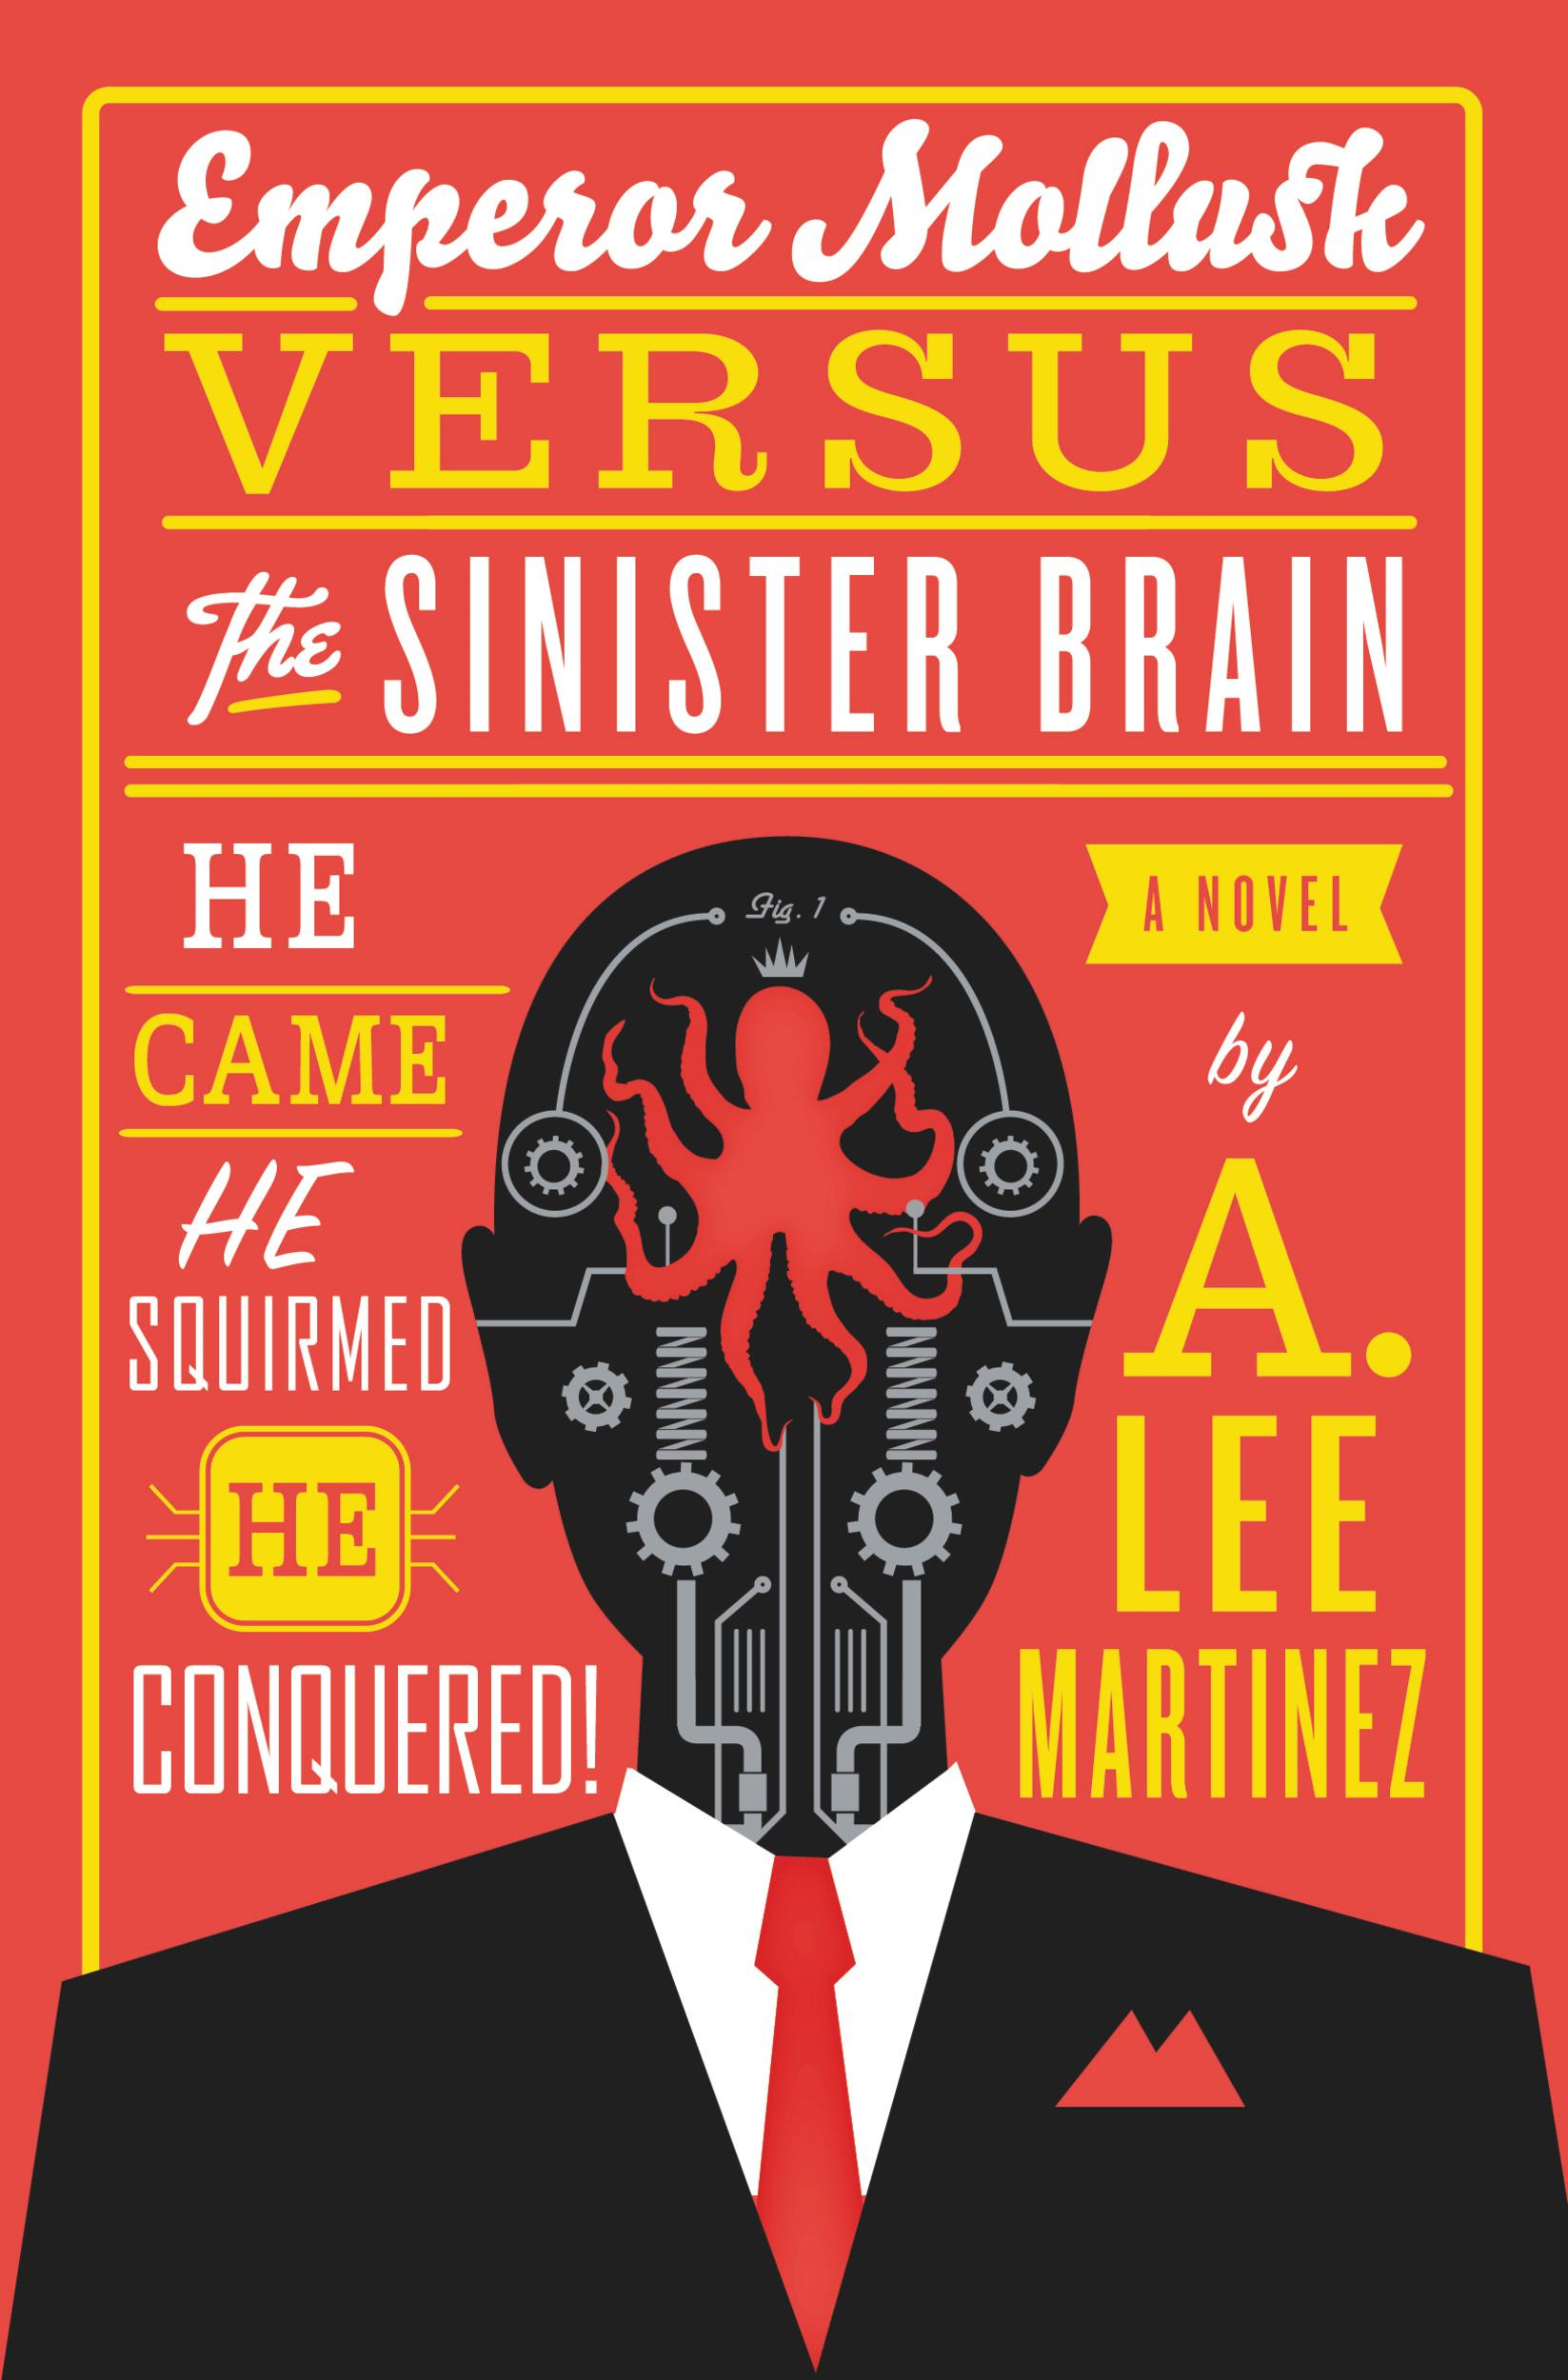 Emperor Mollusk versus The Sinister Brain By: A. Lee Martinez